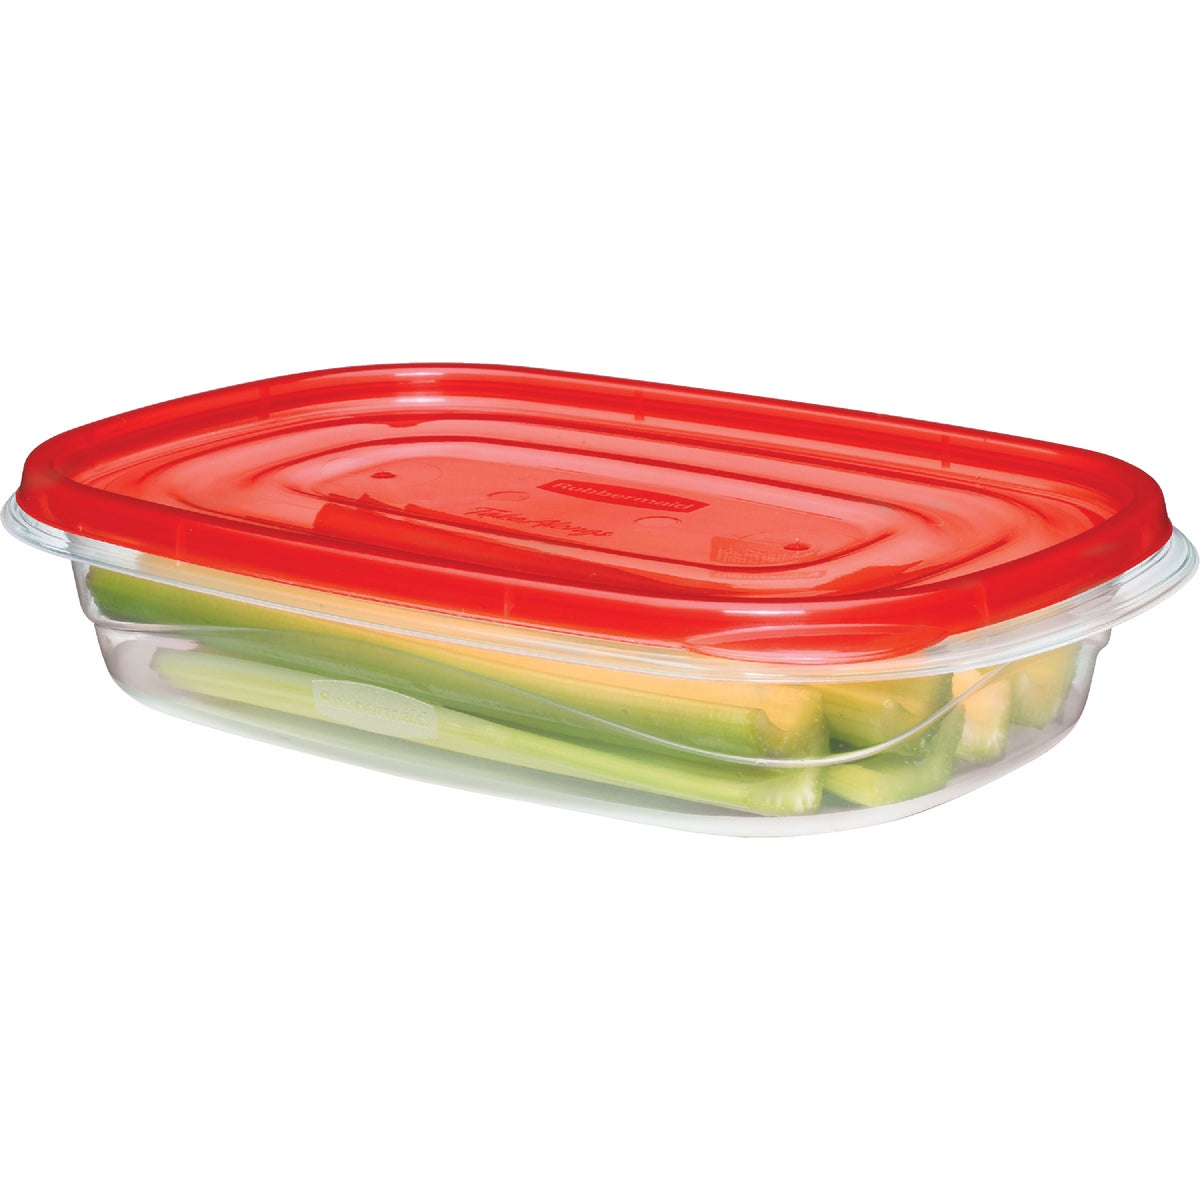 3PC RECTANGLE CONTAINERS - FG7F55RE-TCHIL by Rubbermaid Home